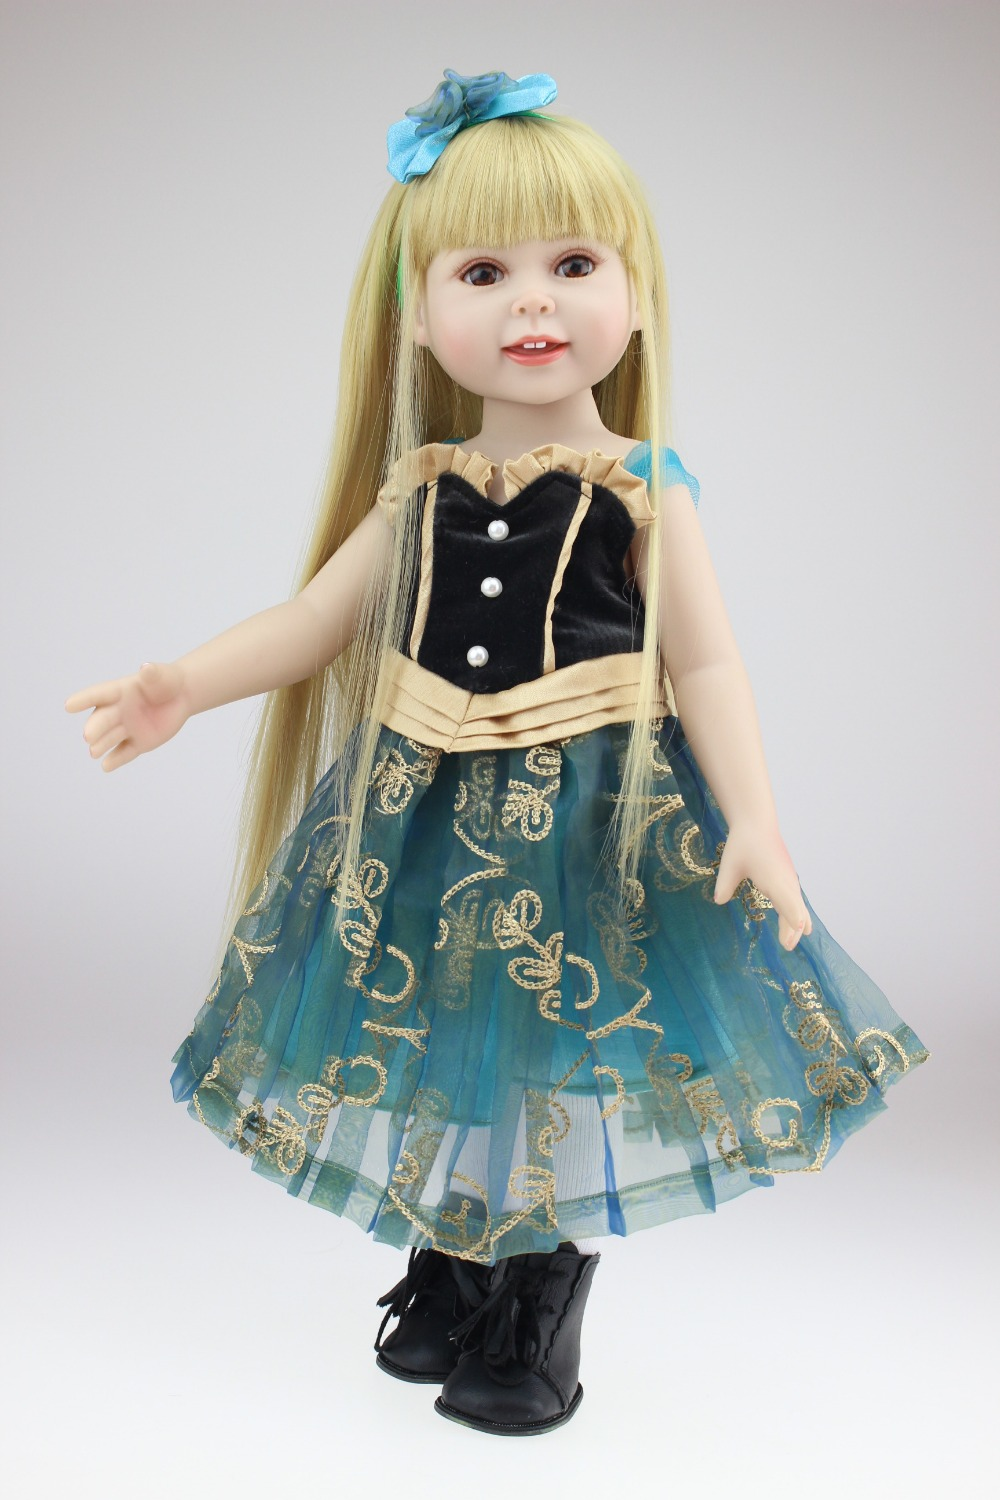 ФОТО 2017 Hot Sale 18inch Reborn Lovely American Girl Doll With Brown Long Straight Hair Realistic Baby Bonecas Bebe Toys Brinquedos